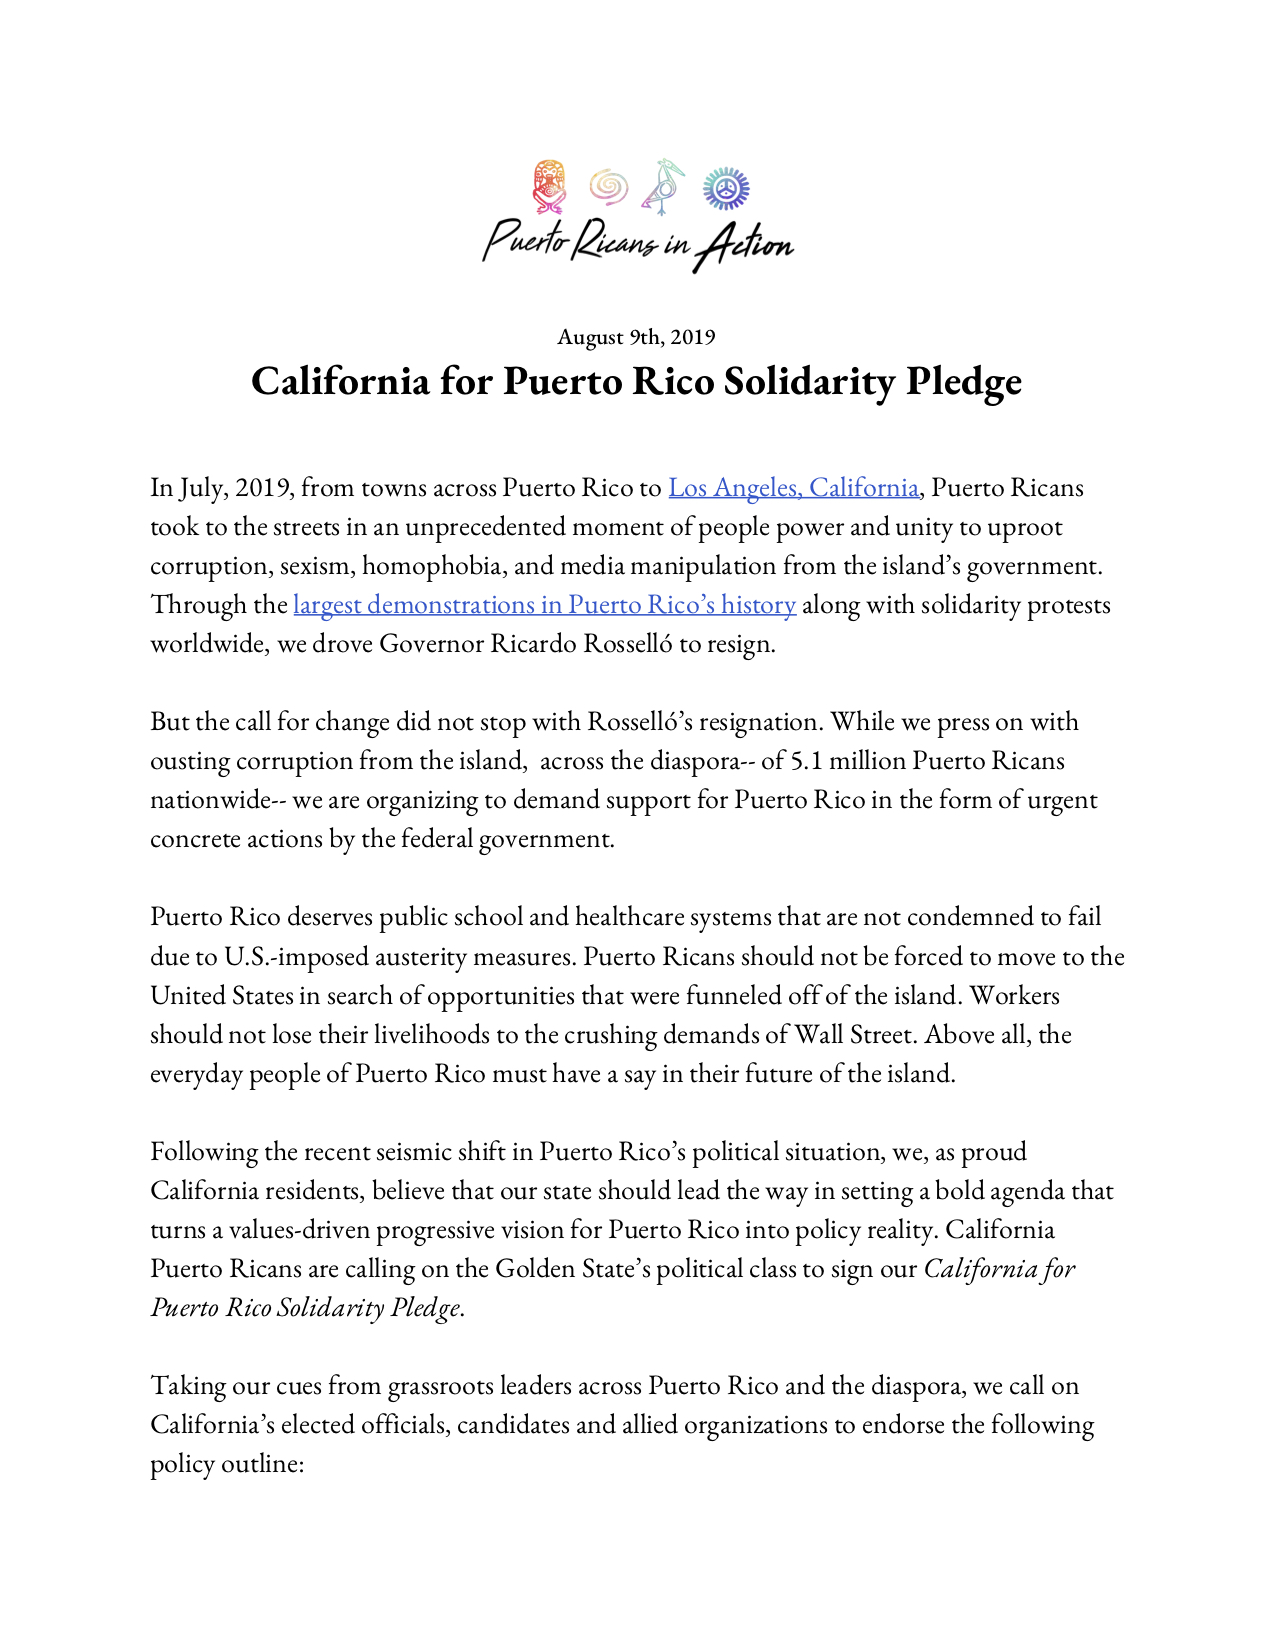 California for Puerto Rico Solidarity Pledge 2019.jpg